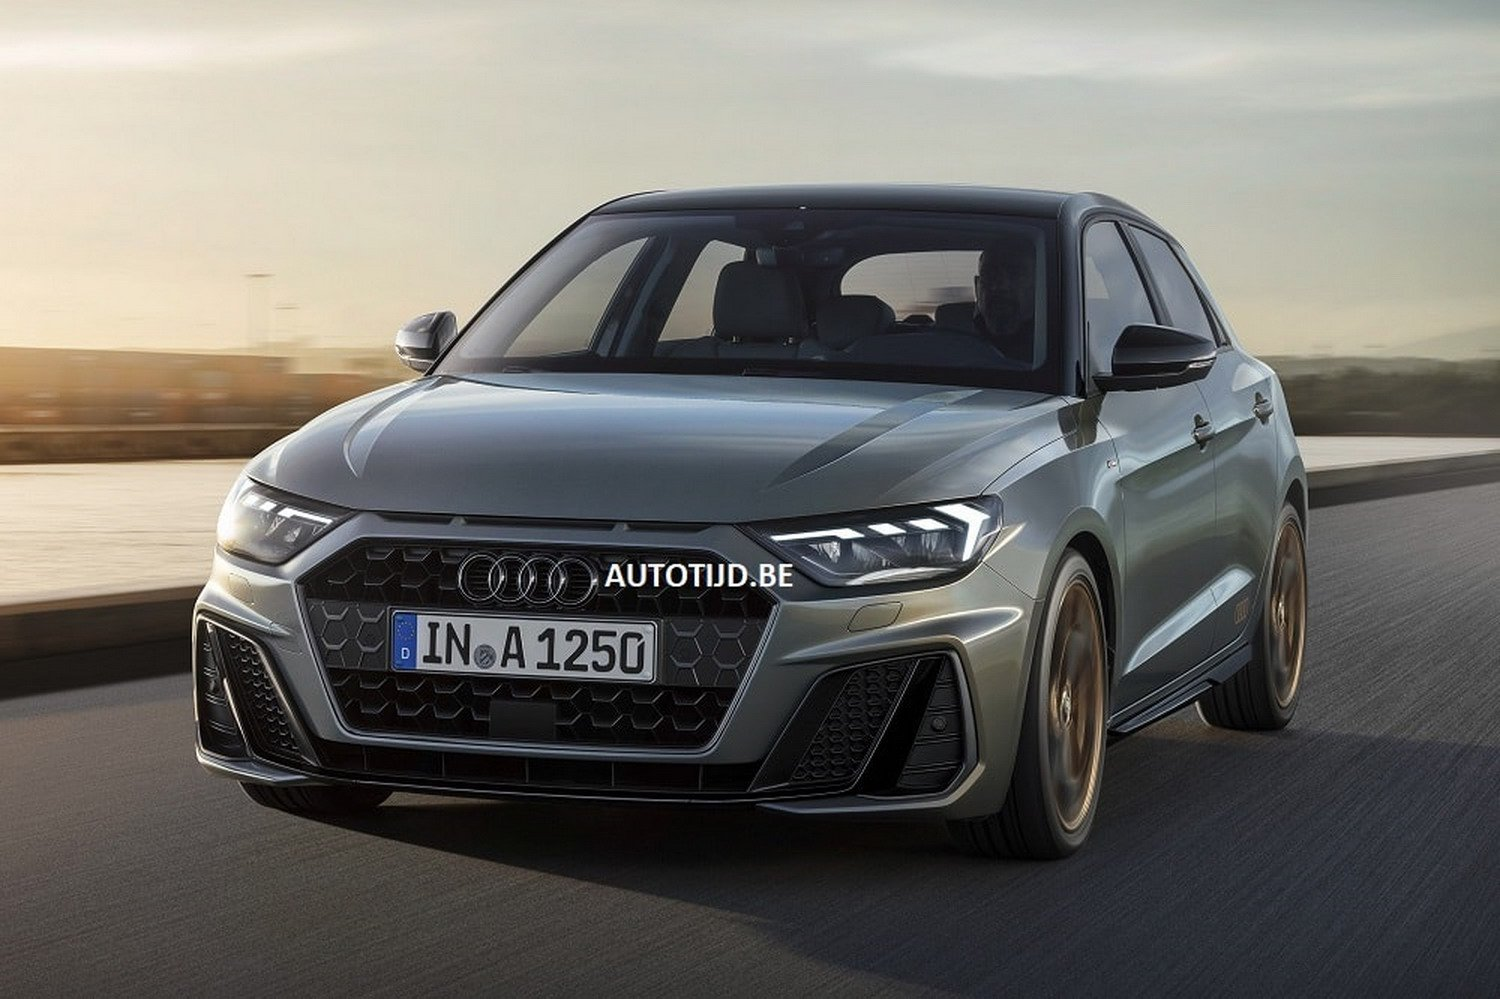 2019 audi a1 leaked official photos reveal sporty design. Black Bedroom Furniture Sets. Home Design Ideas